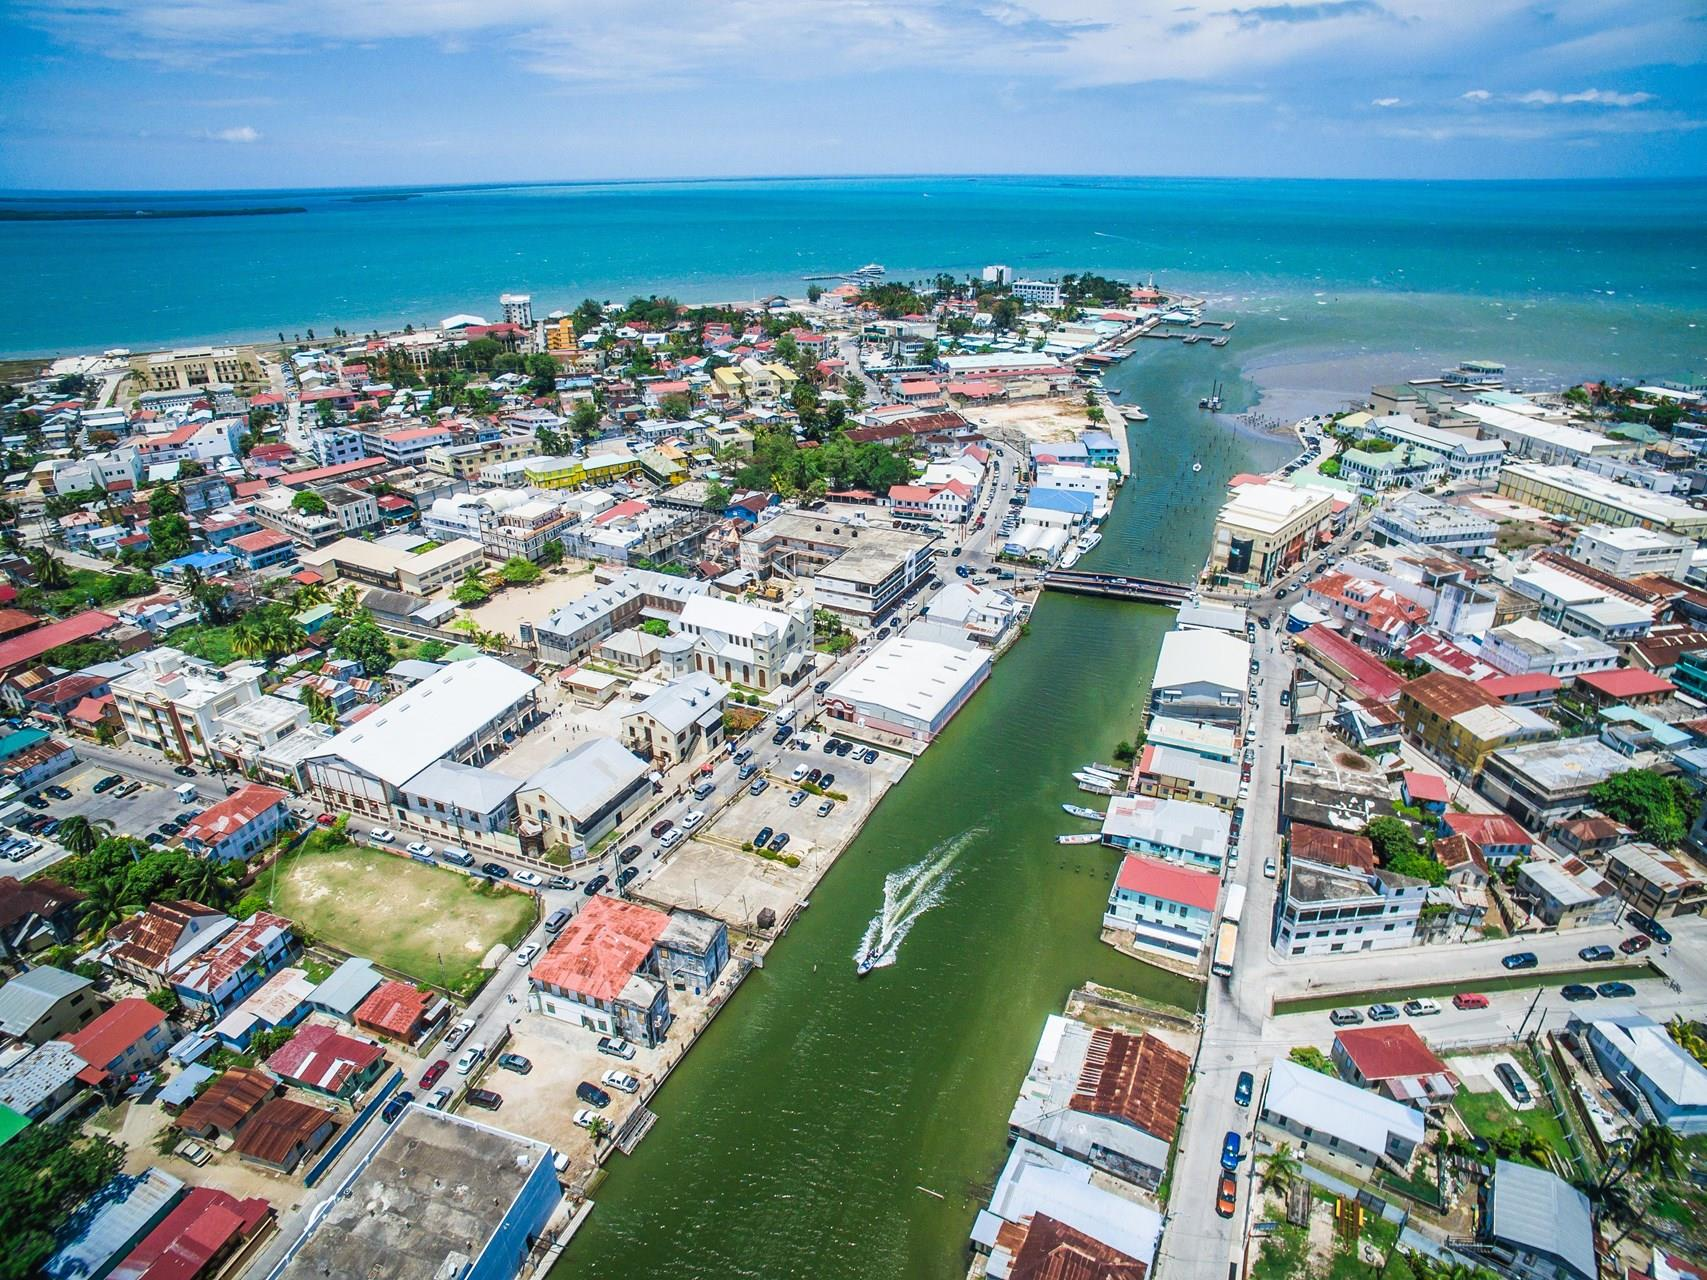 Belize: companies economic substance and taxation issues